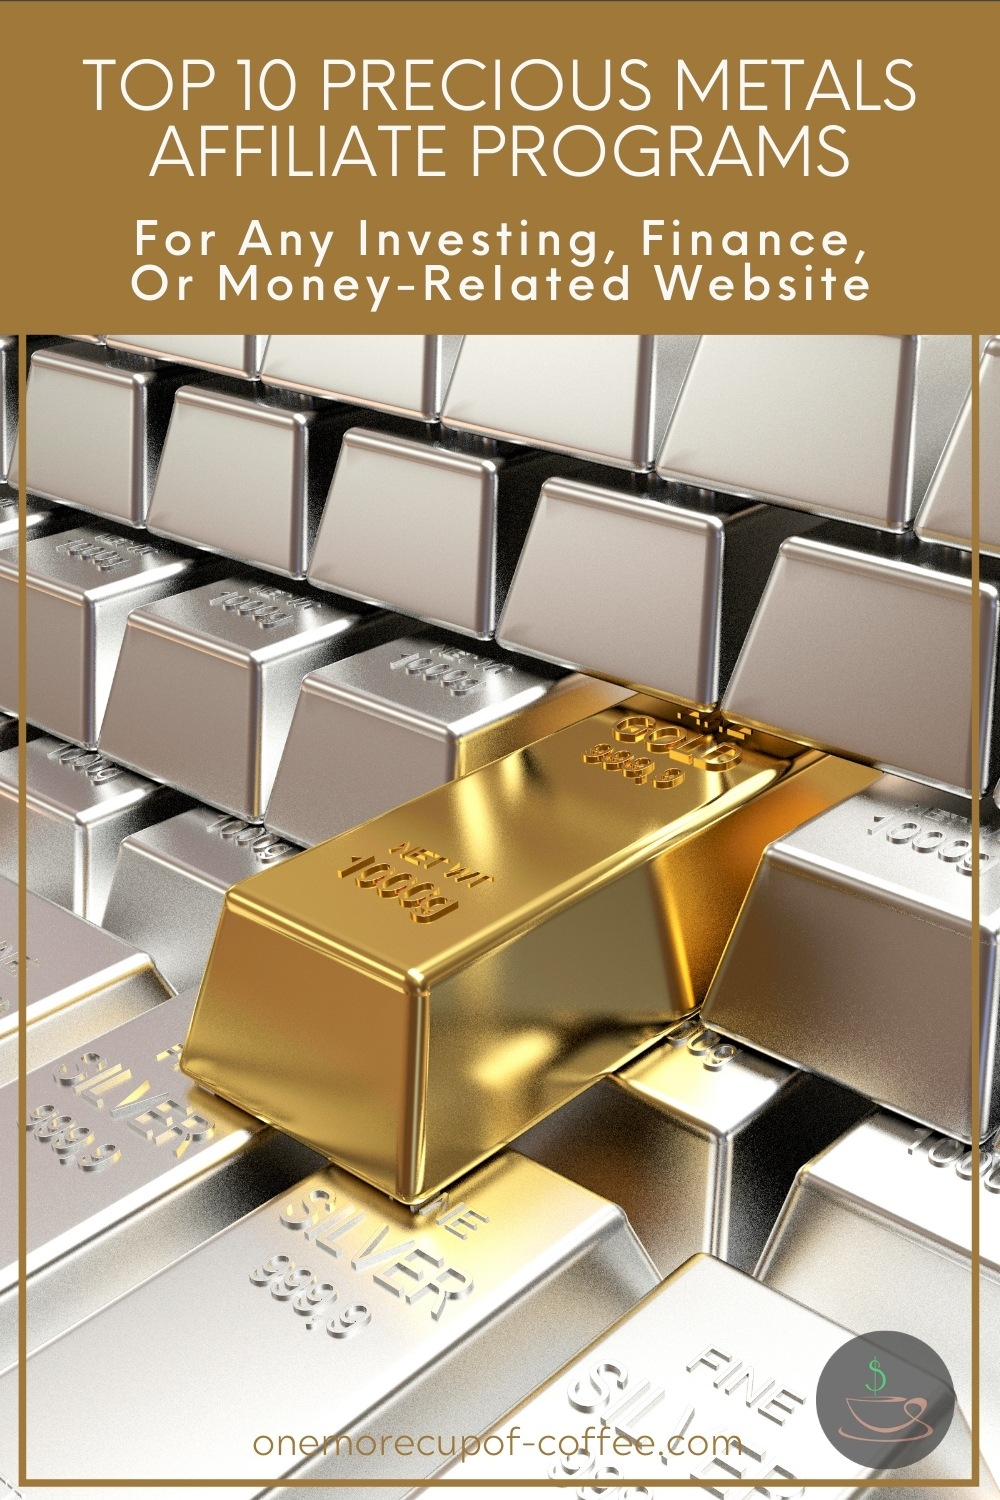 """closeup image of silver bars with one single gold bar, with text overlay at the top in gold banner """"Top 10 Precious Metals Affiliate Programs For Any Investing, Finance, Or Money-Related Website"""""""